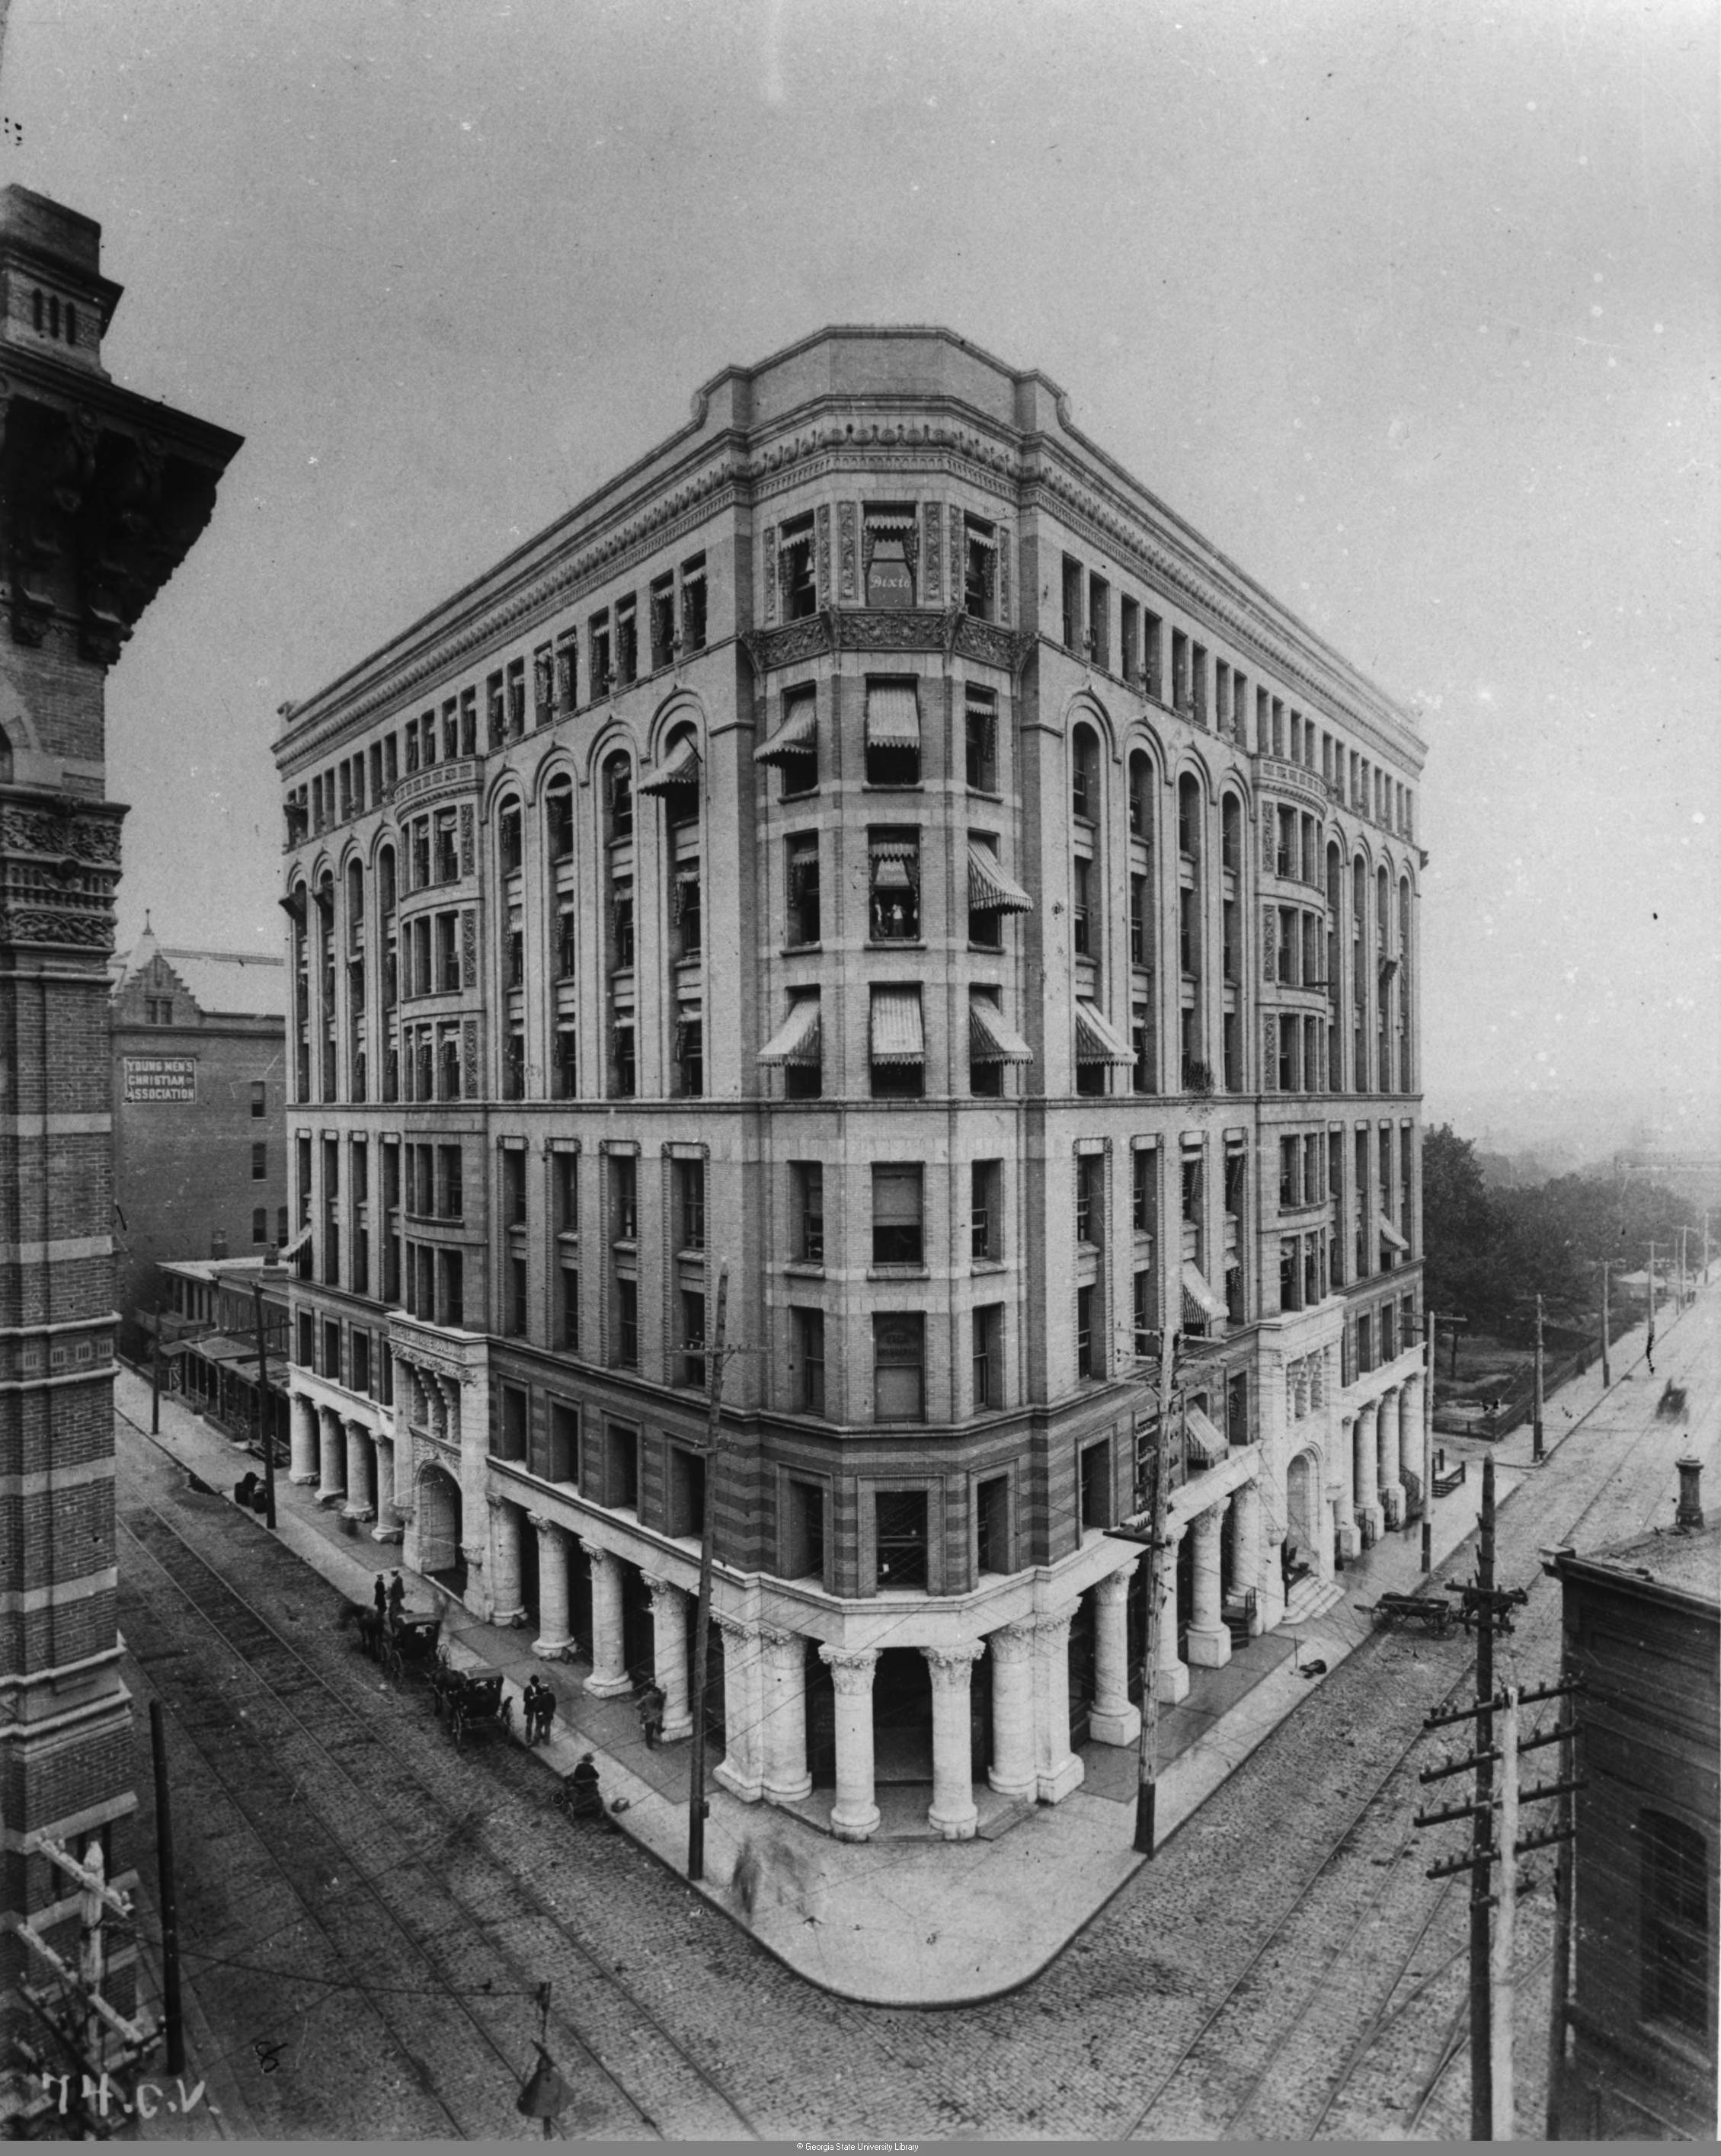 One Of The Earliest Known Pictures The Equitable Building Probably Taken Soon After It Was Completed In 1892 - Georgia State University Library